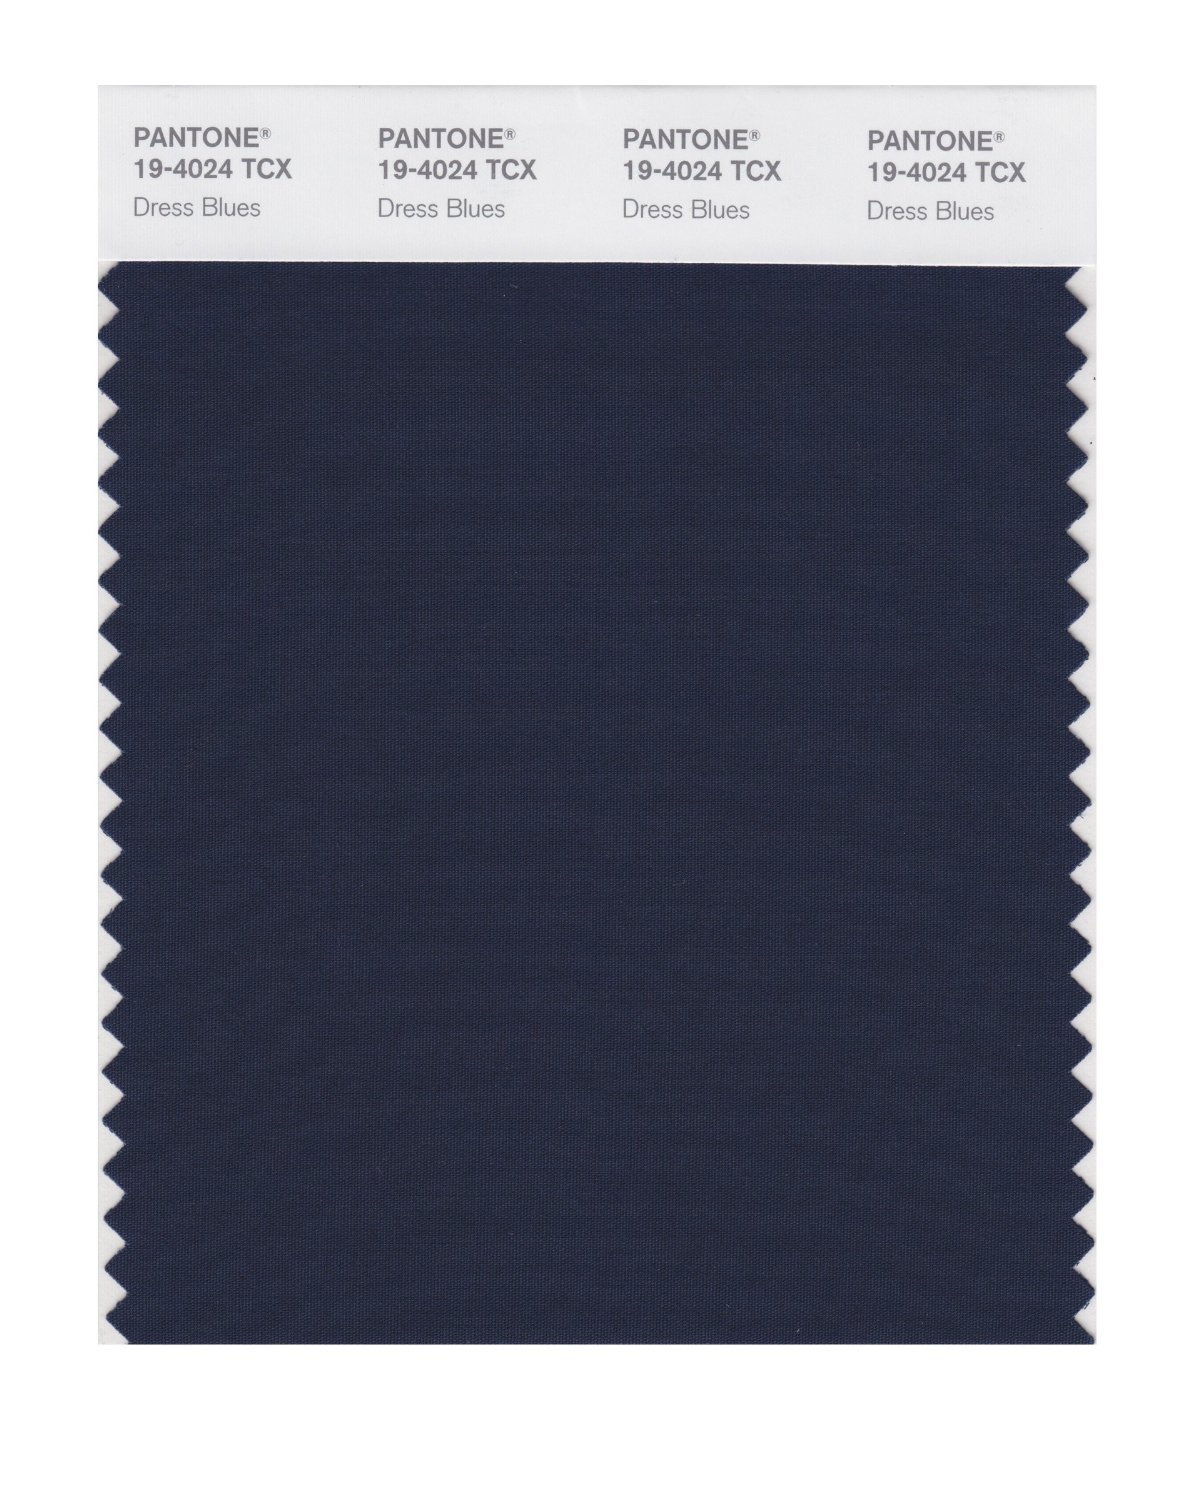 Pantone Smart Swatch 19-4024 Dress Blues